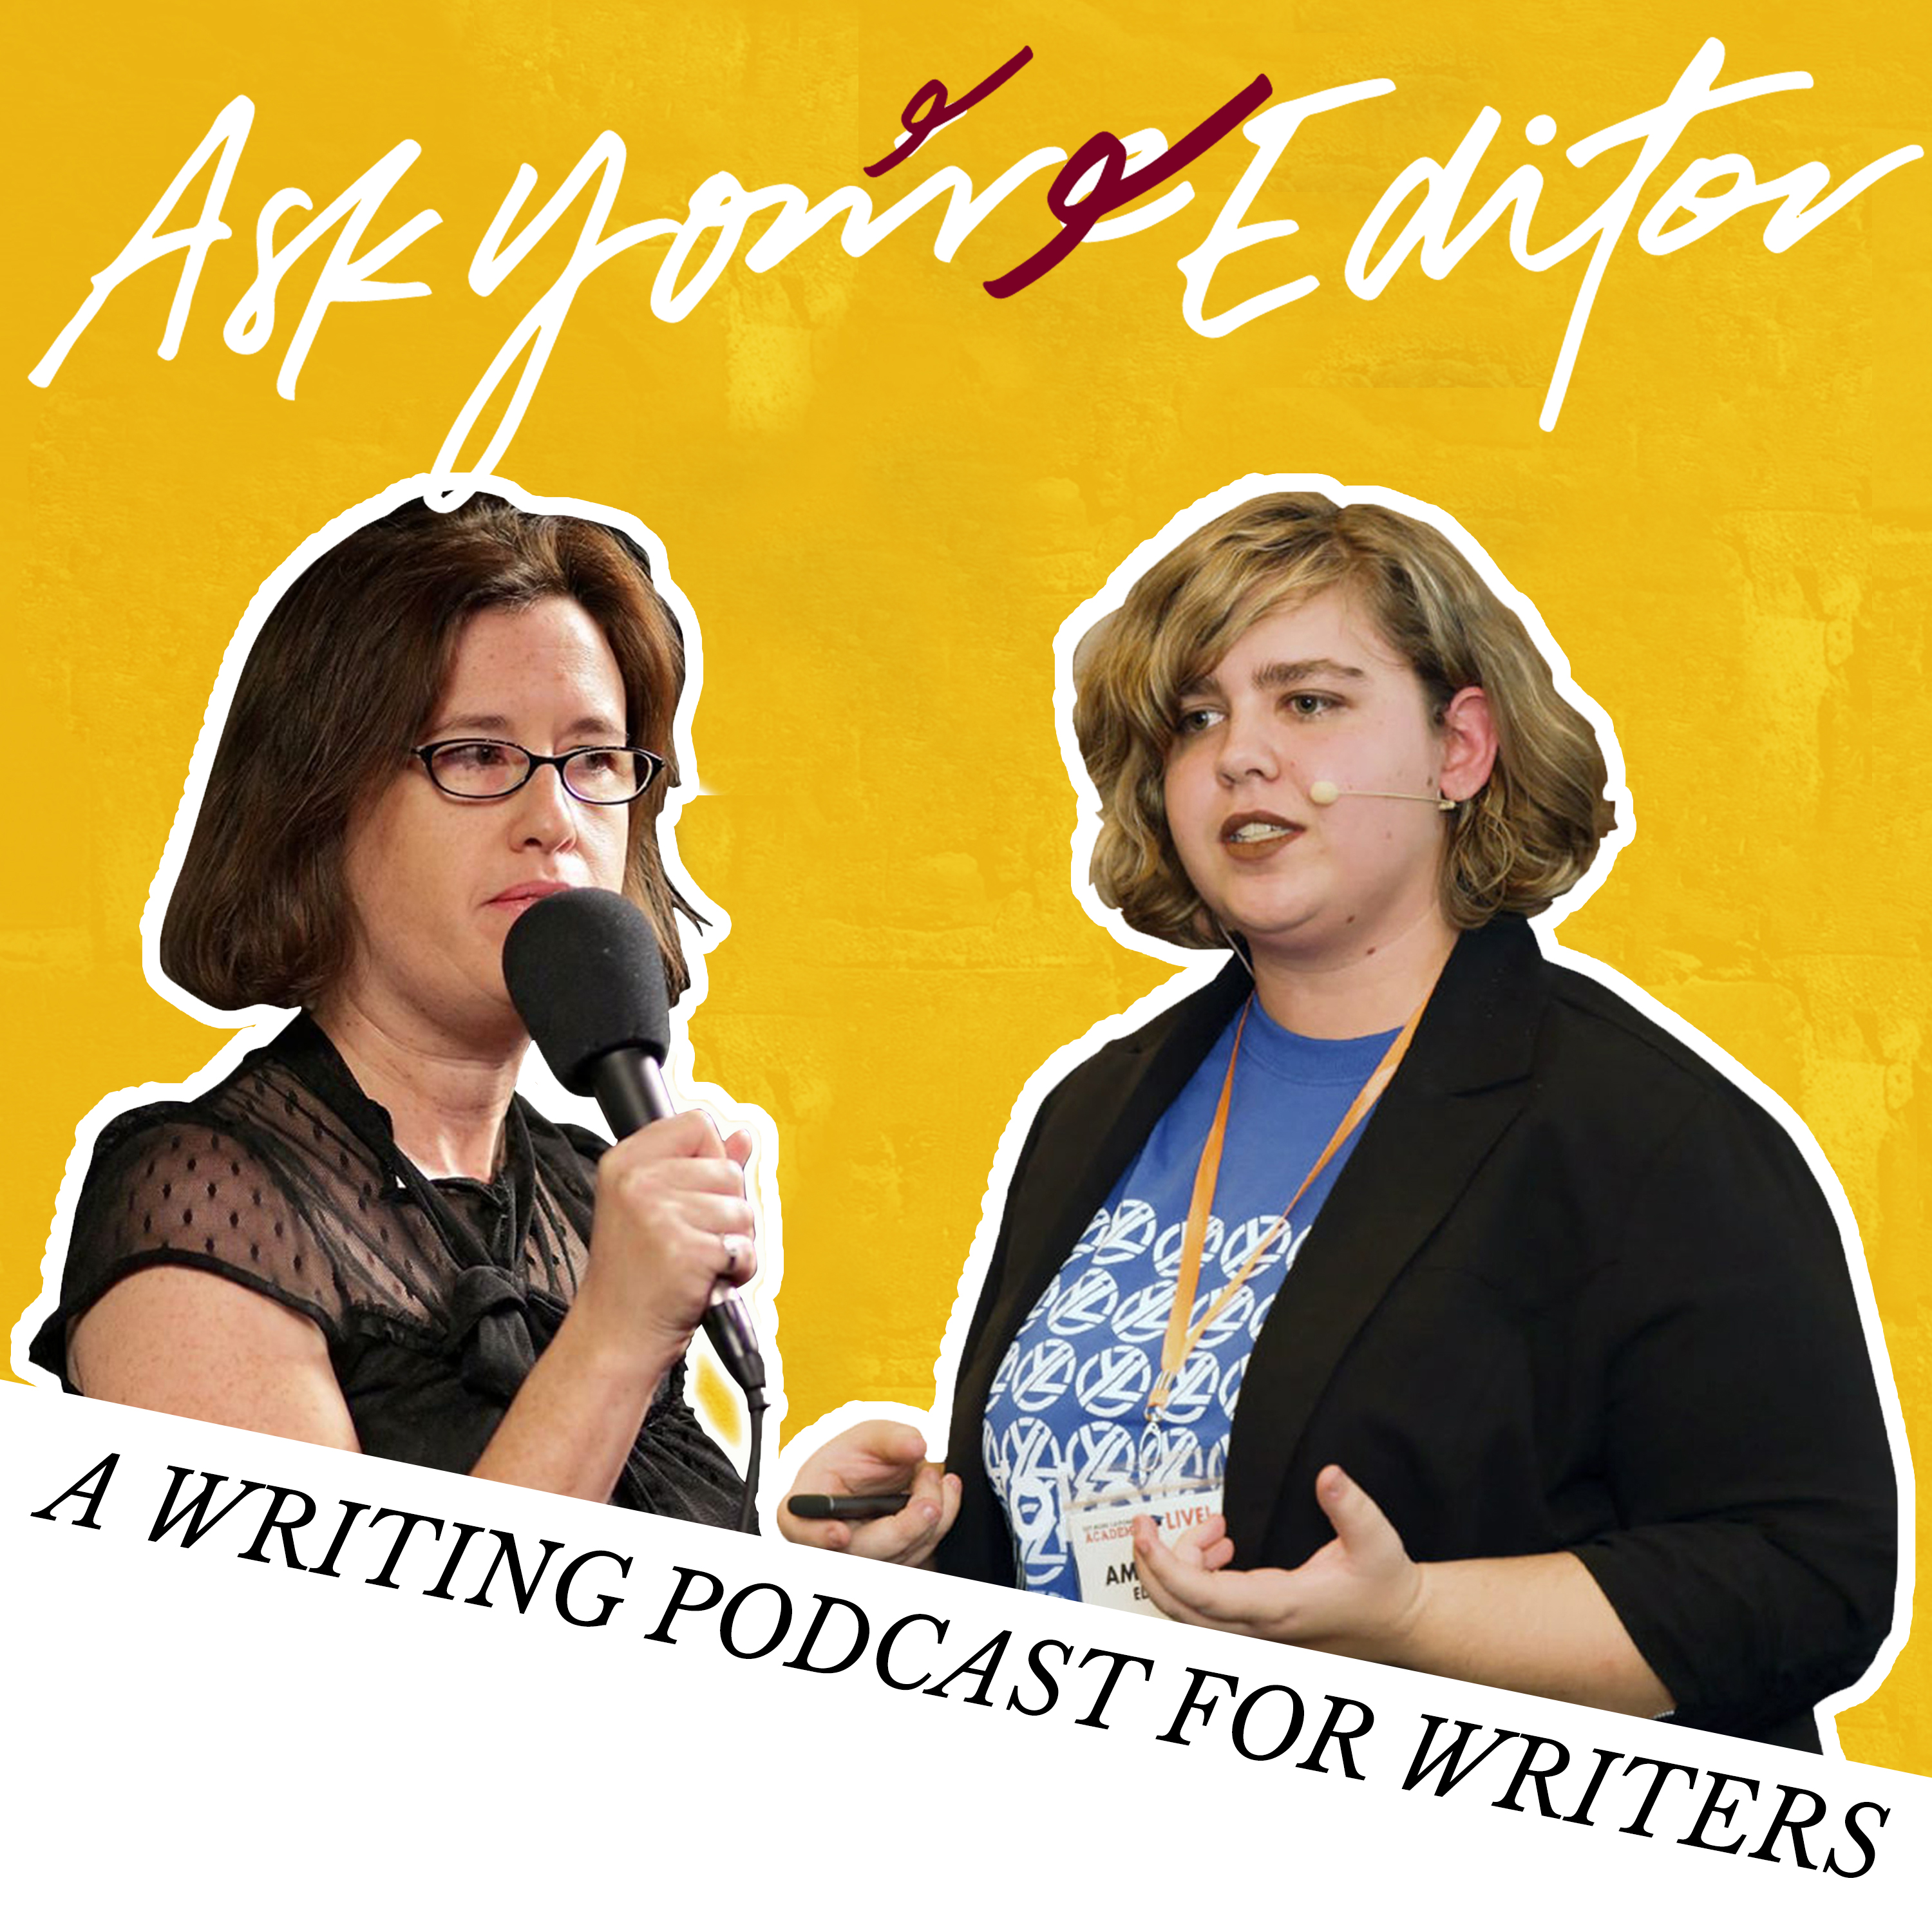 Ask Your Editor Writing Podcast show art